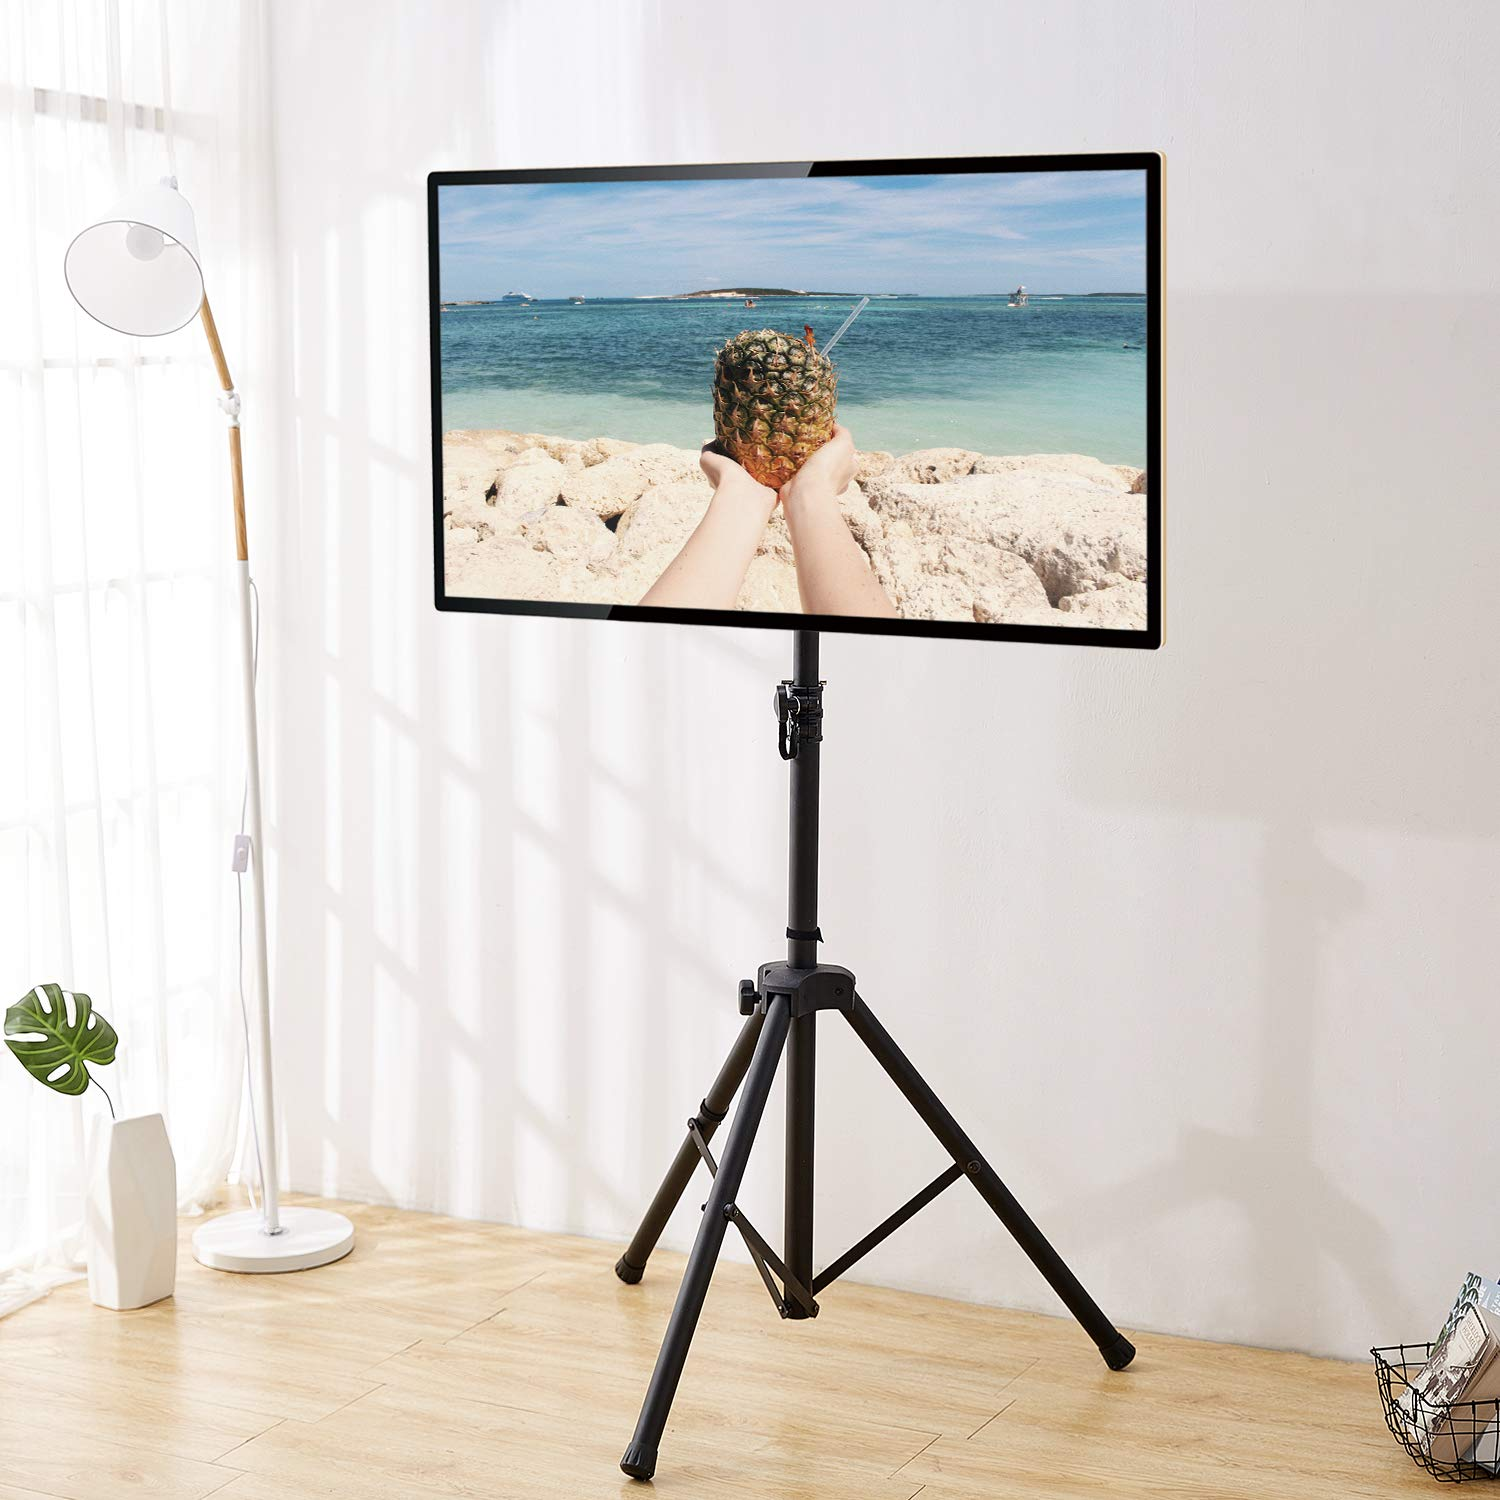 Rfiver Flat Panel TV Tripod Display Portable Floor TV Stand Foldable Monitor Stand with Universal Swivel Mount and Adjustable Height Fits 32 -55 Flat Screens, VESA 400x400mm, Black DS1001